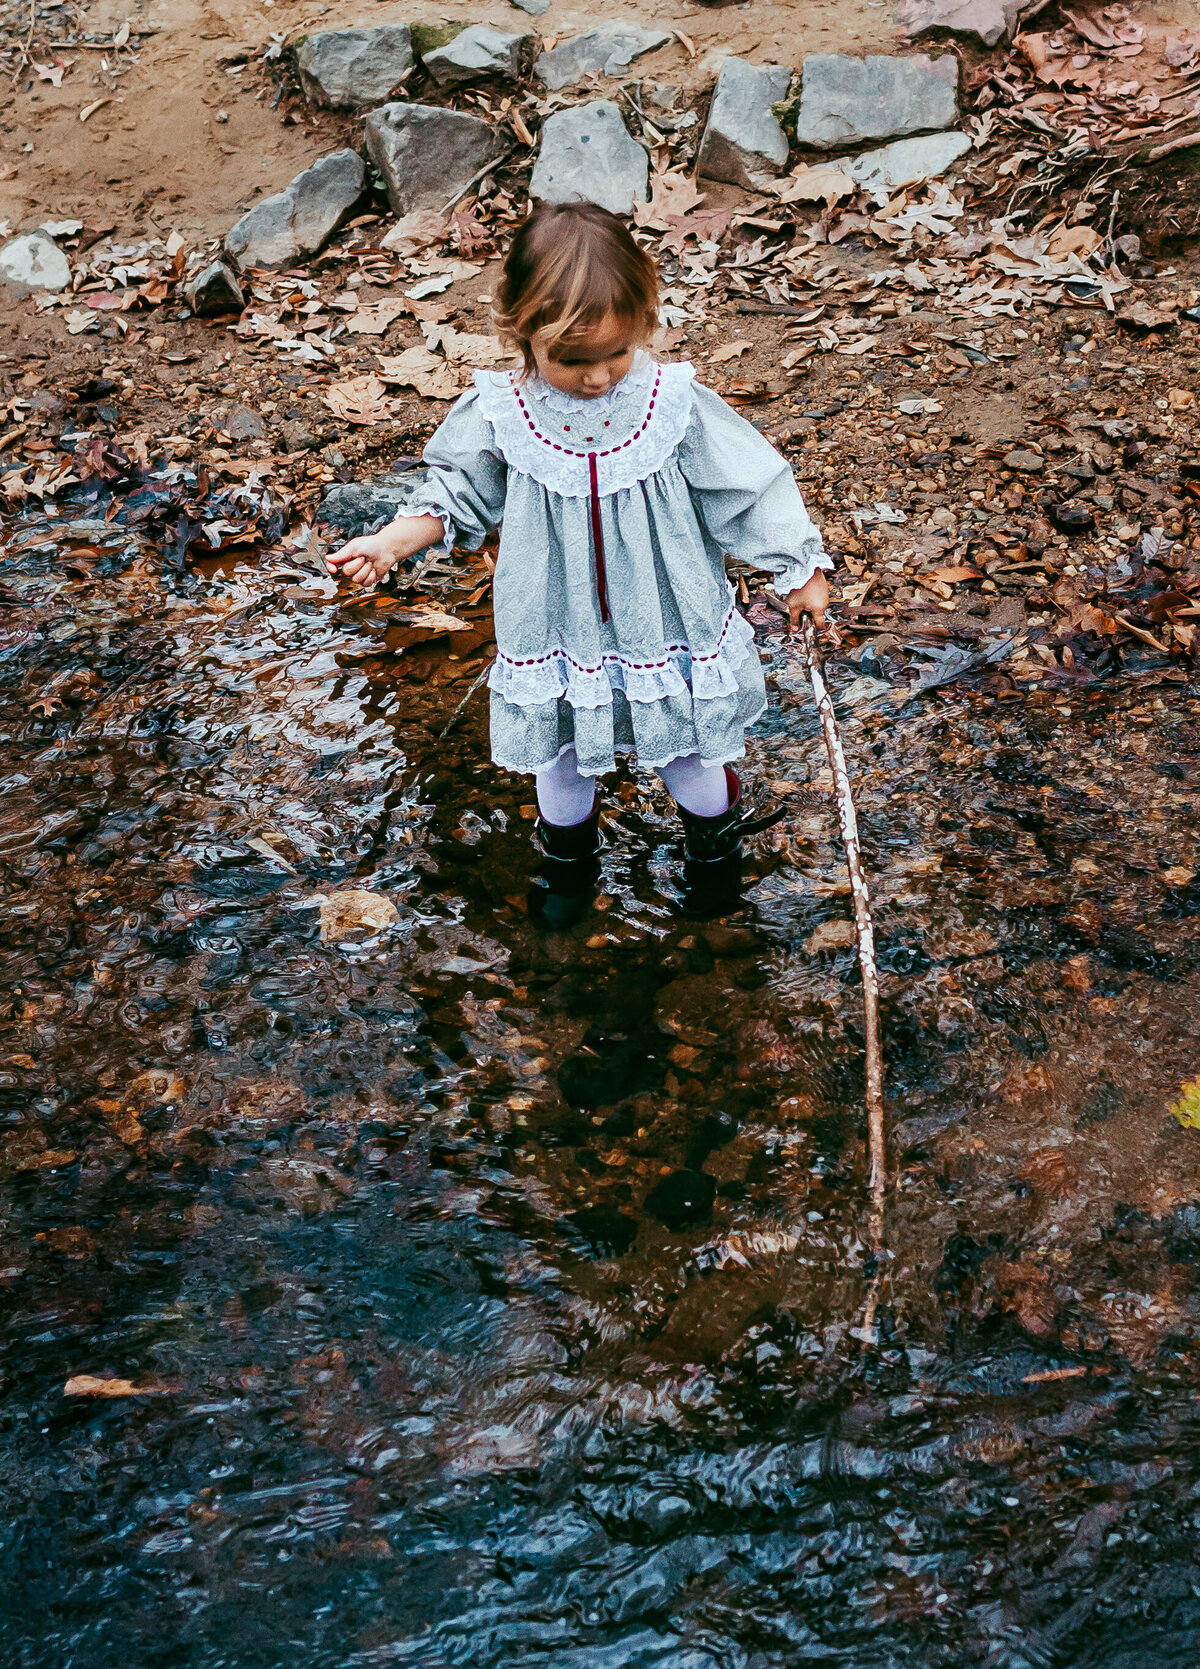 Little girl with stick in creek